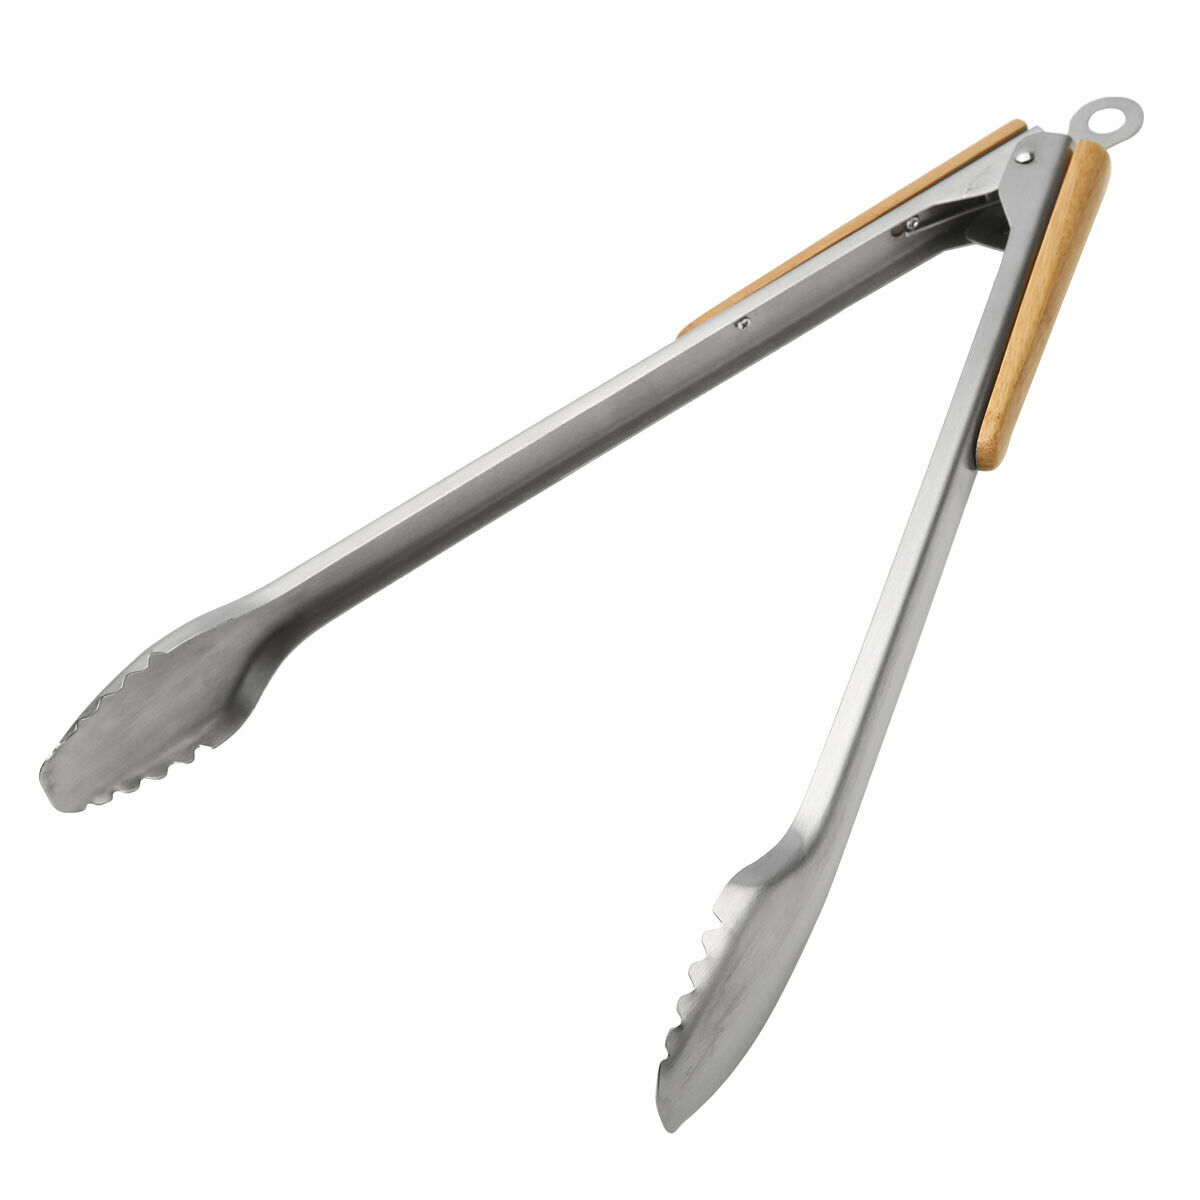 Large Metal Barbecue Tongs With Wooden Handle Extra Long 34cm Outdoor Grill BBQ Serving Cooking Clamps